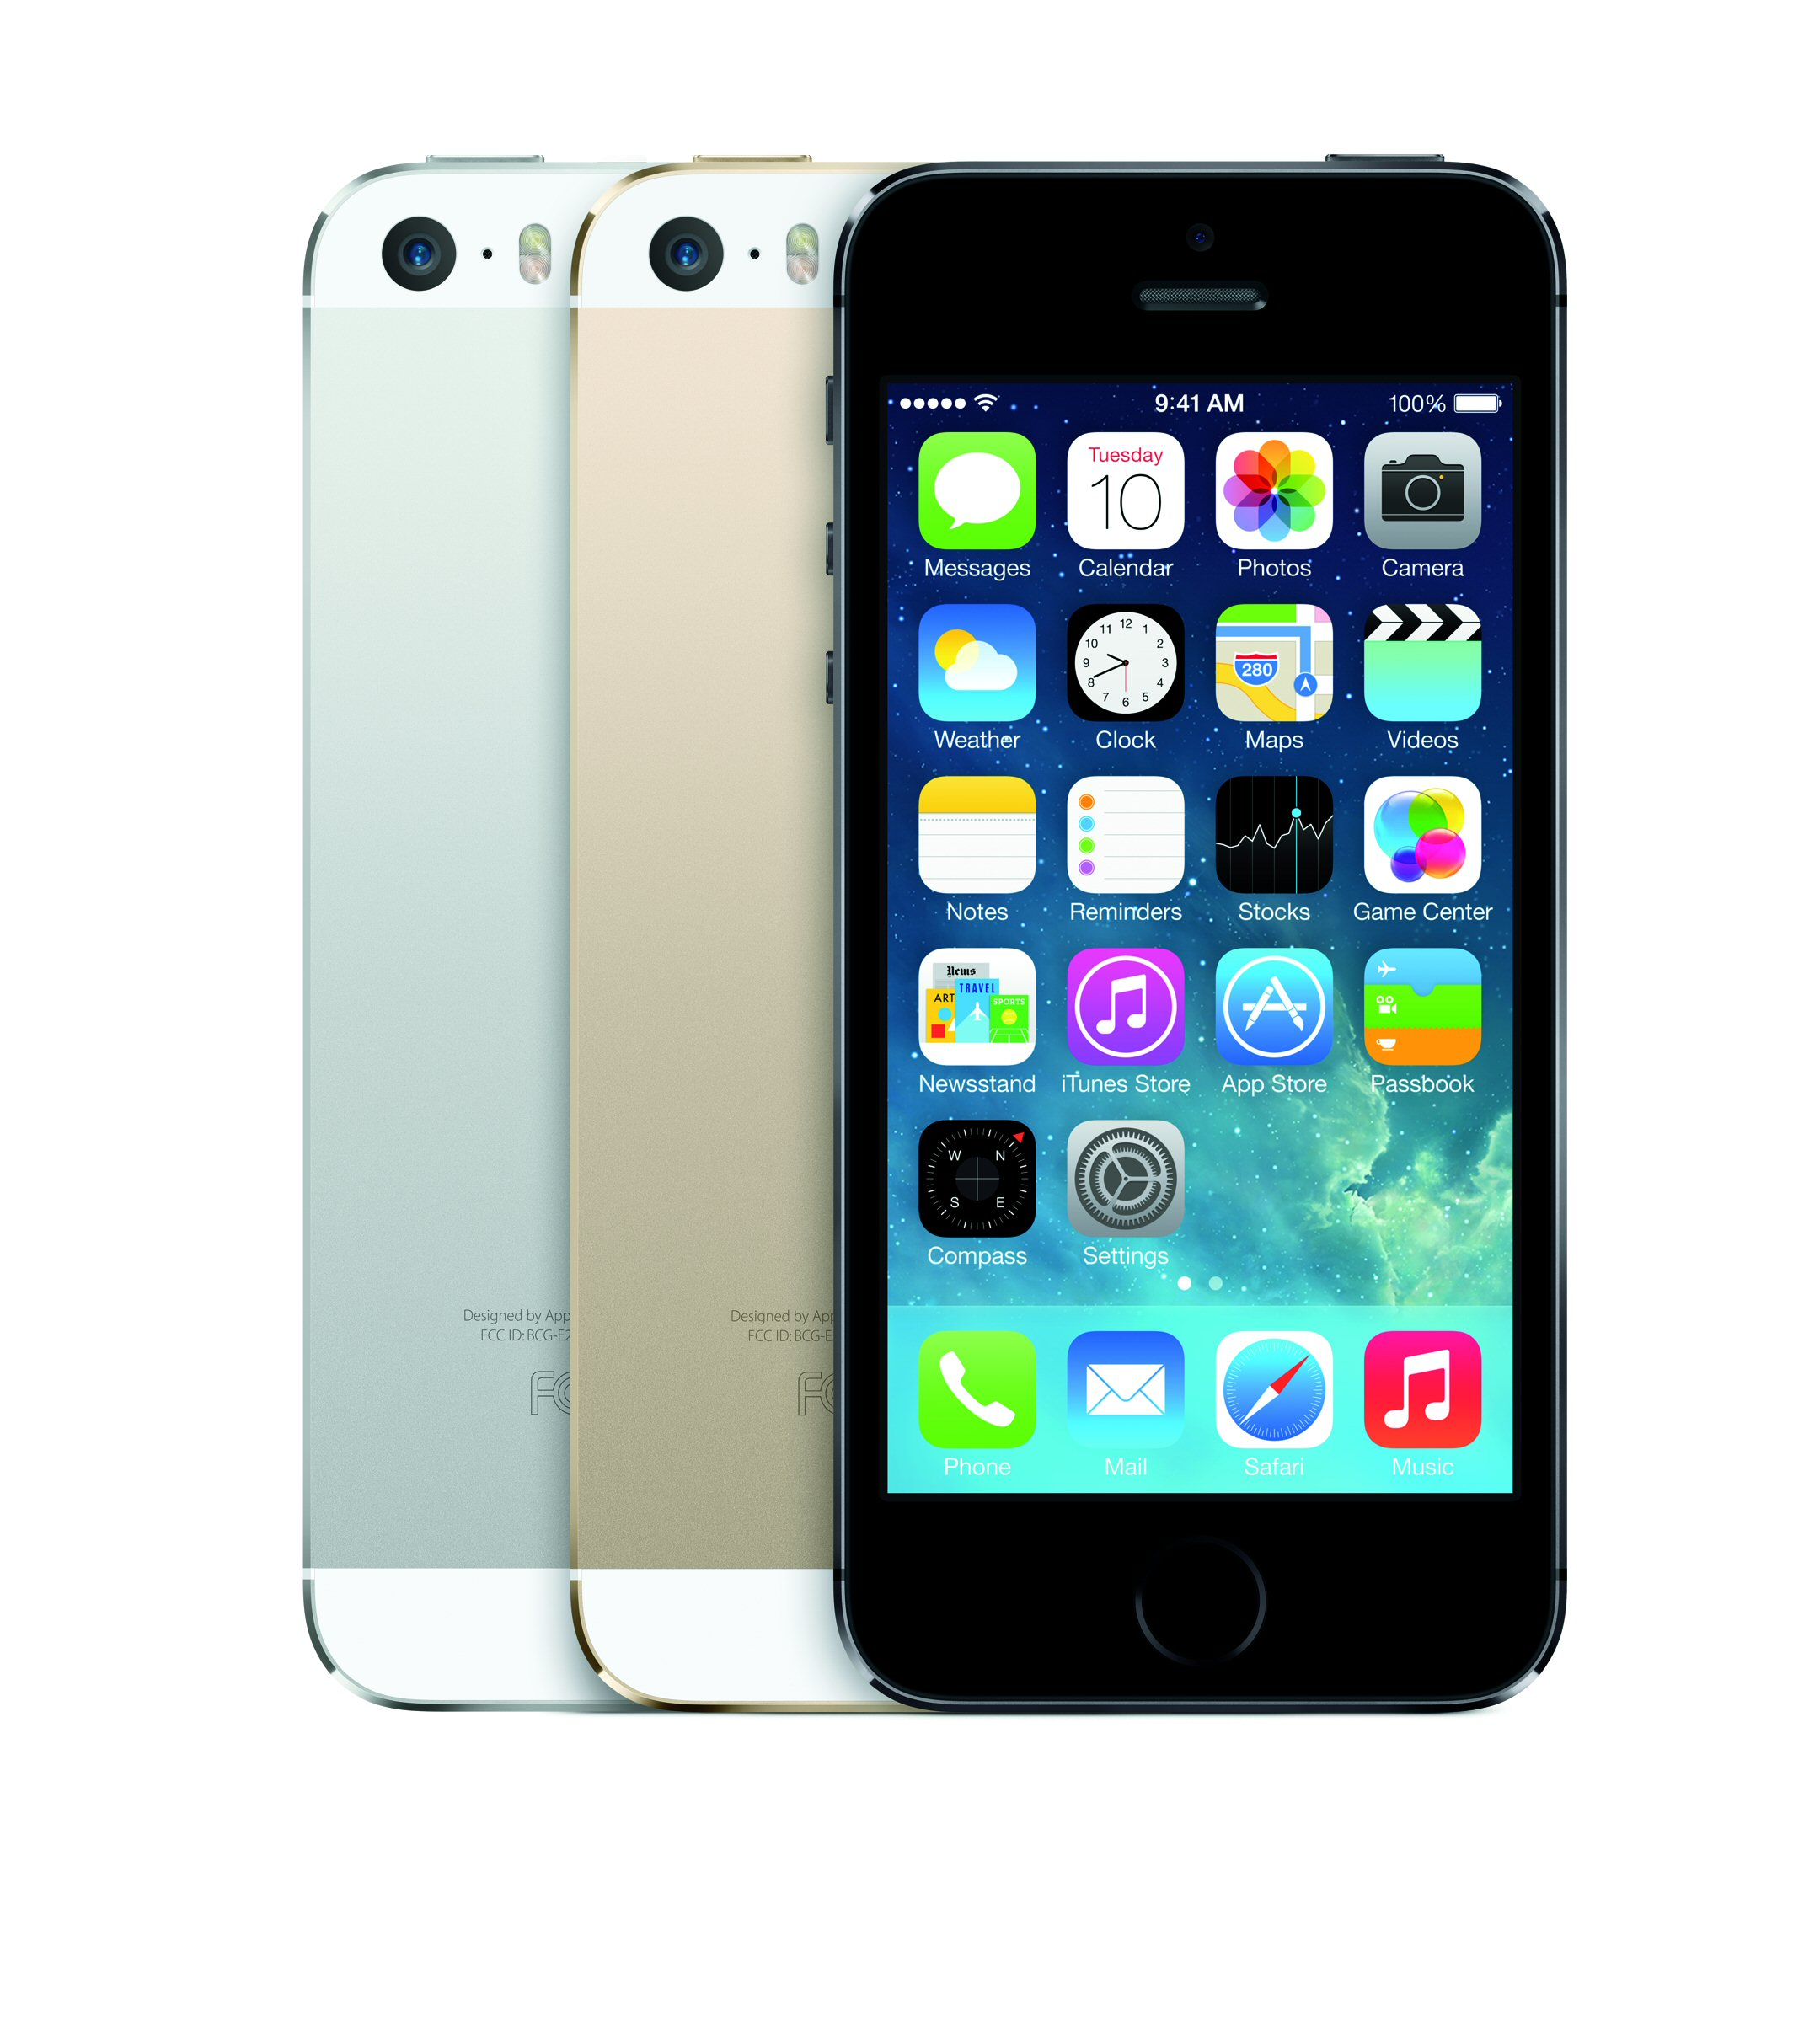 iPhone5s_3Color_iOS7_PRINT.jpg